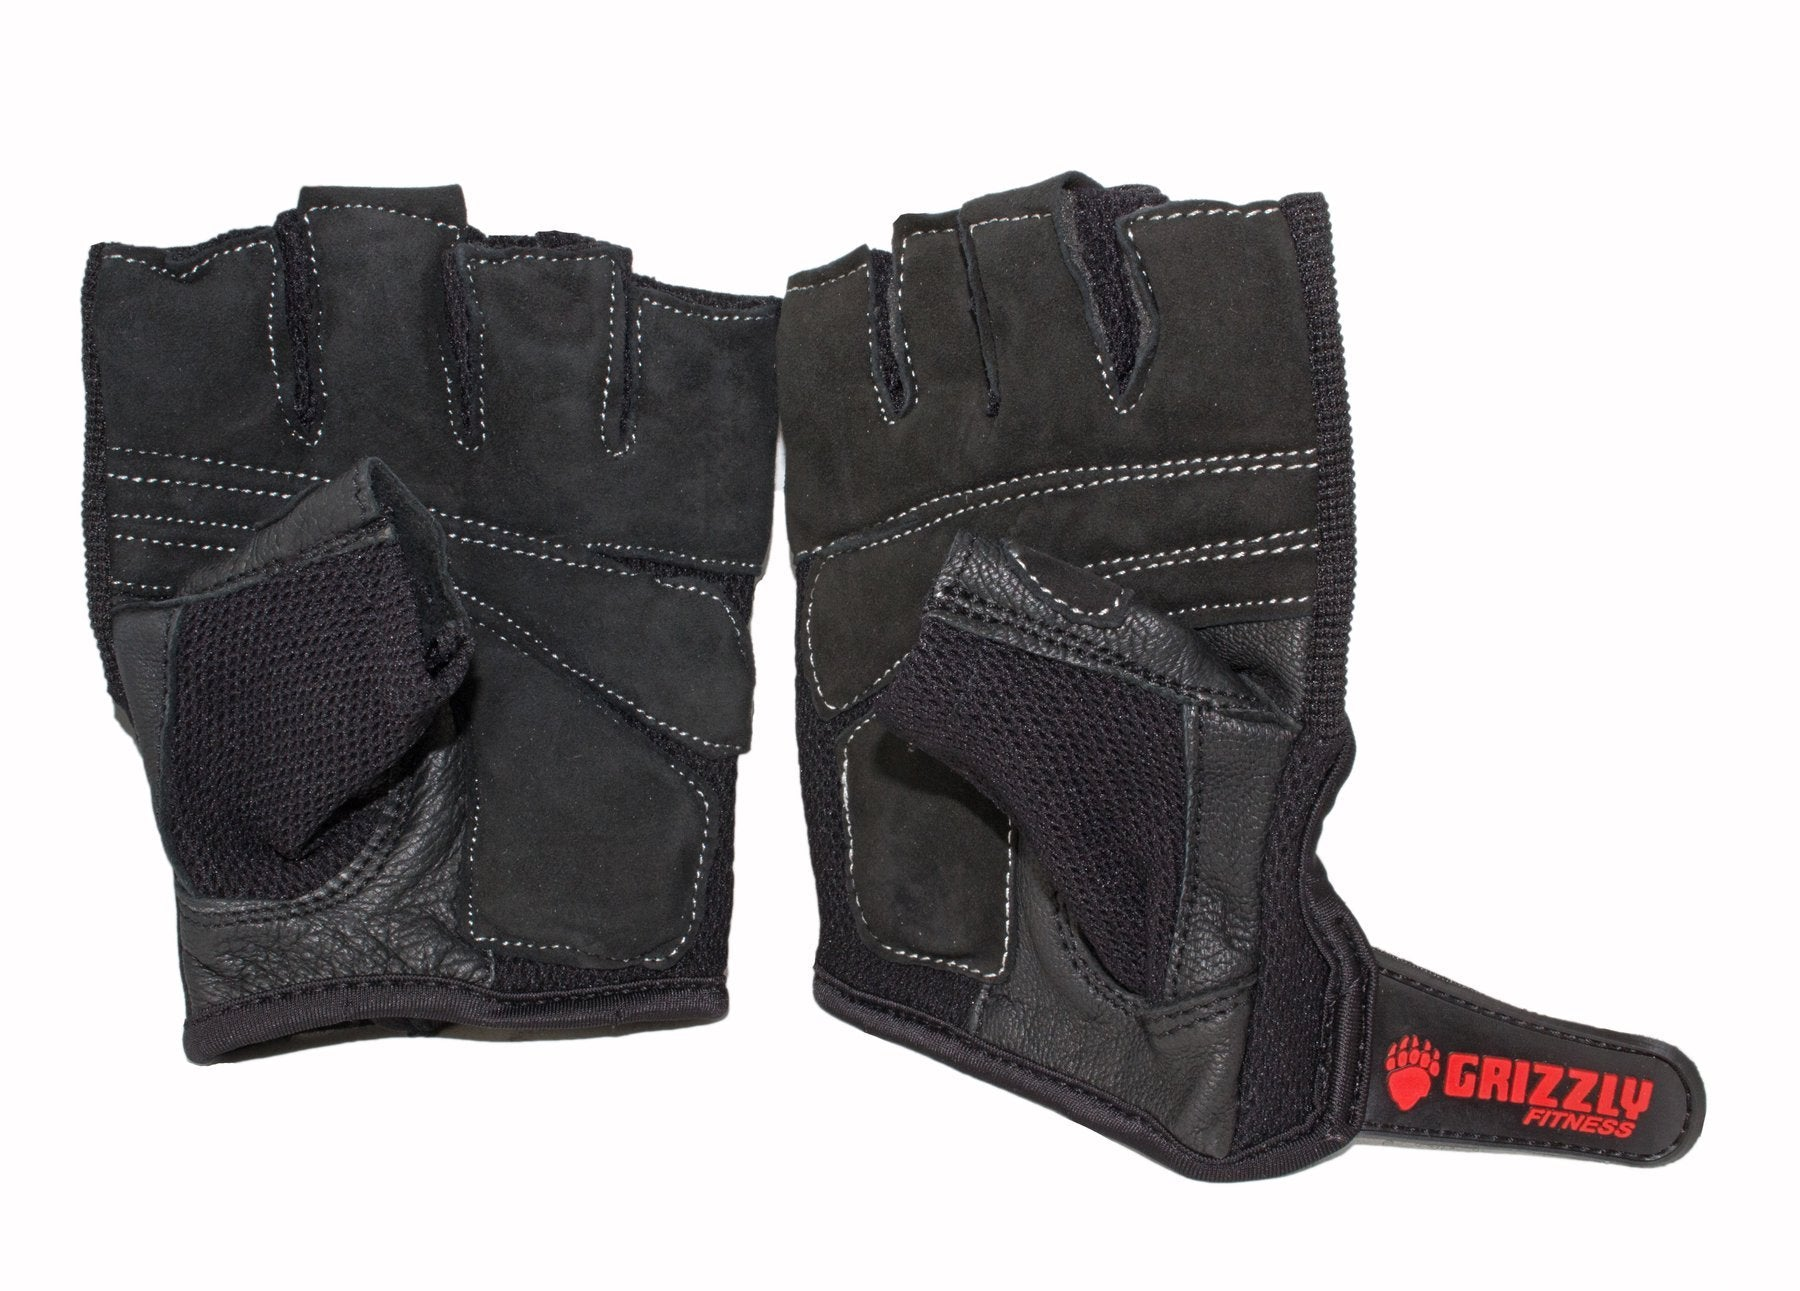 Grizzly Ignite Training Gloves for Men UAE - Prosportsae.com